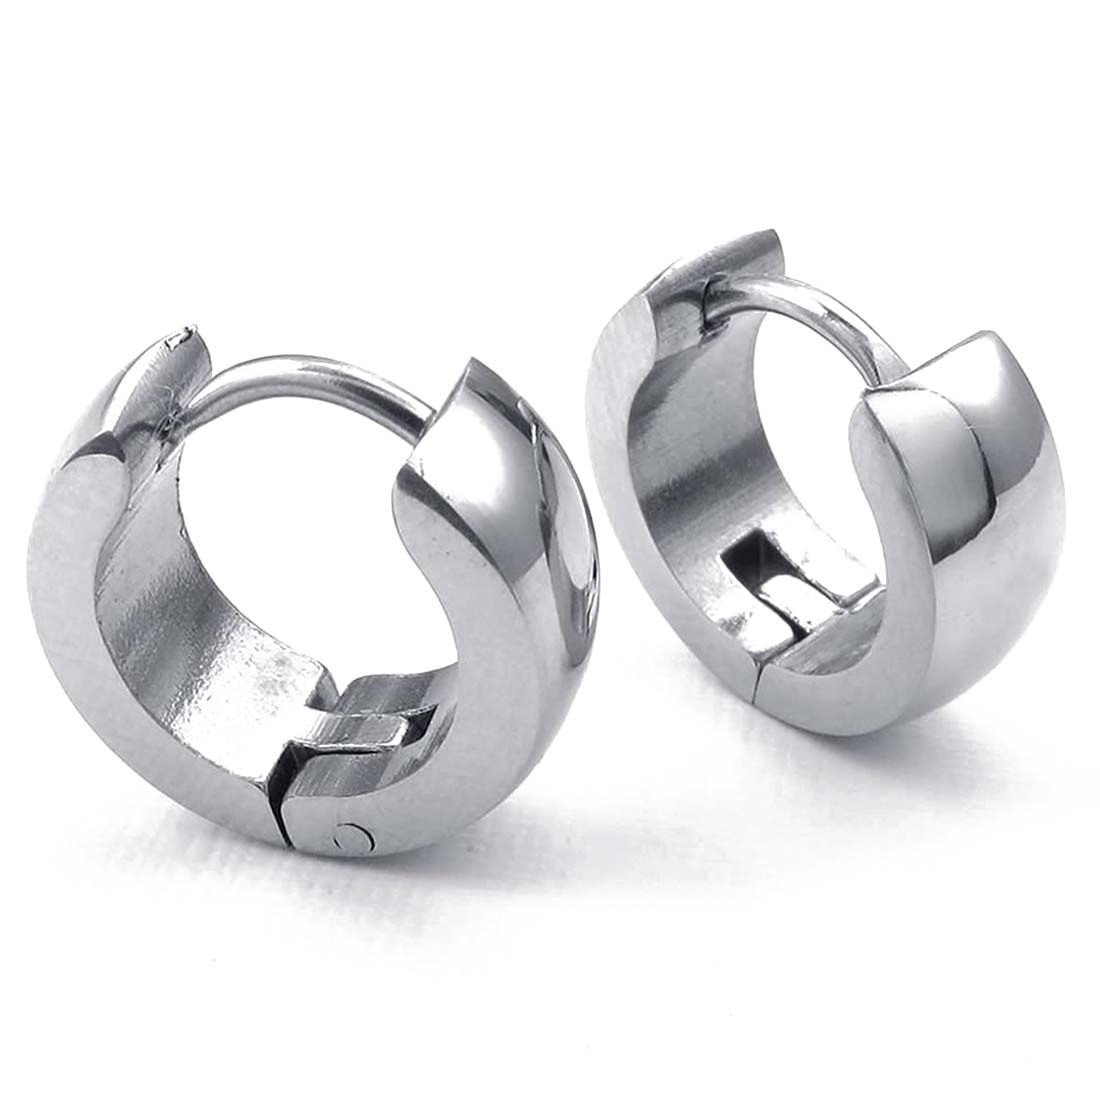 Jewelery Earrings - Minimalist Design Hinged Rings - Stainless Steel - for Men and Women - Silver - With Gift Bag